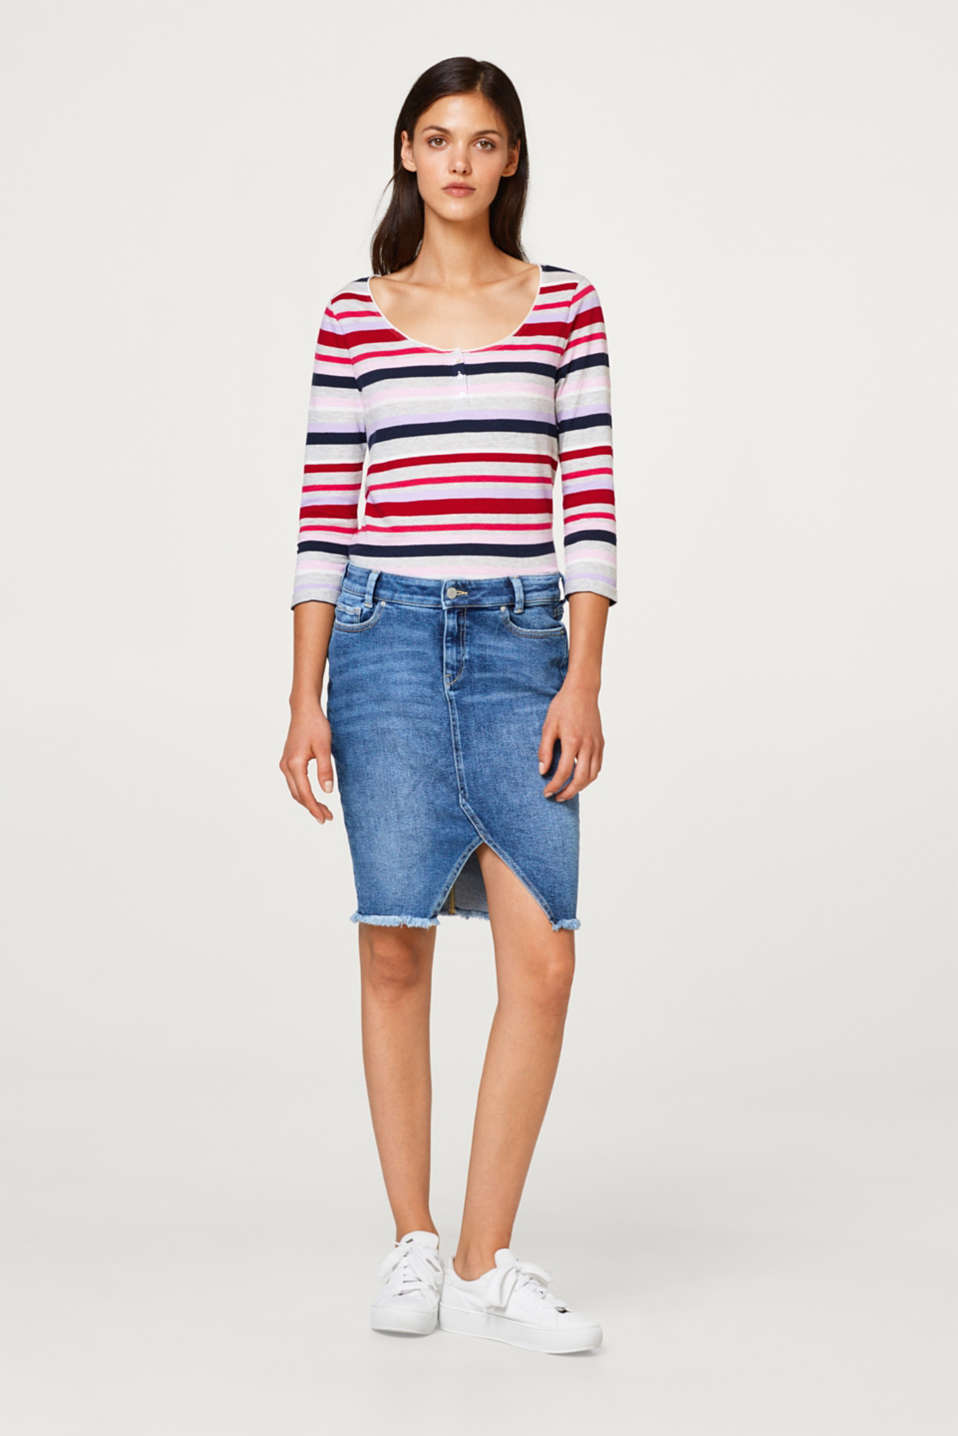 Striped top with a button placket